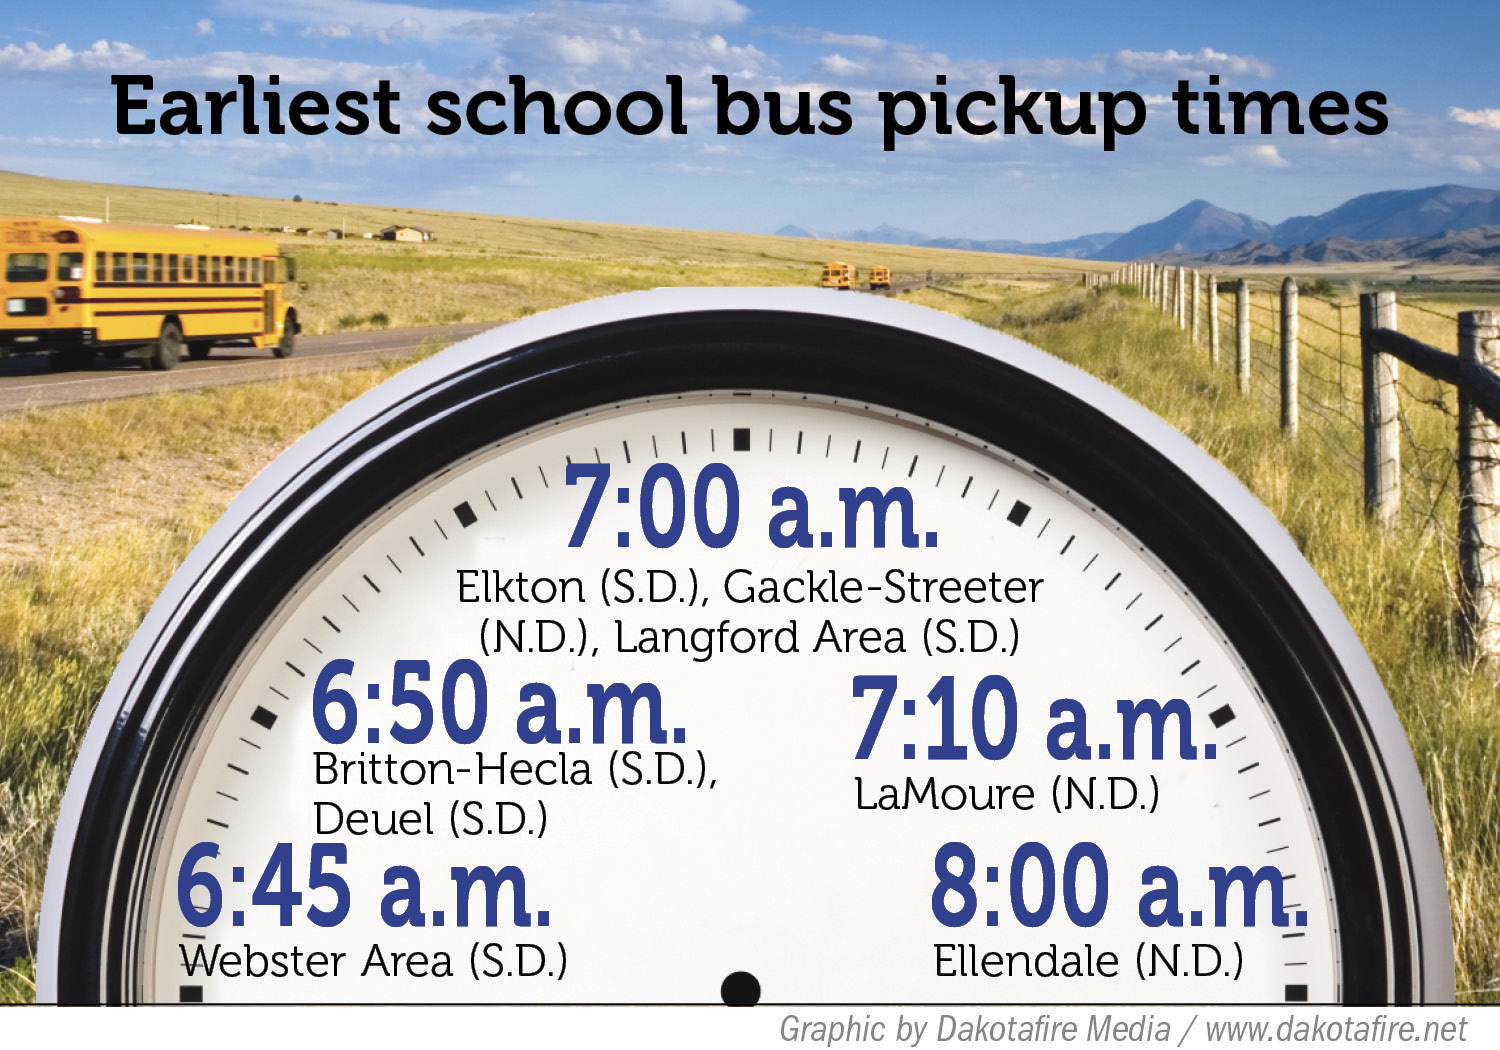 Students' time on the school bus affected by district boundaries